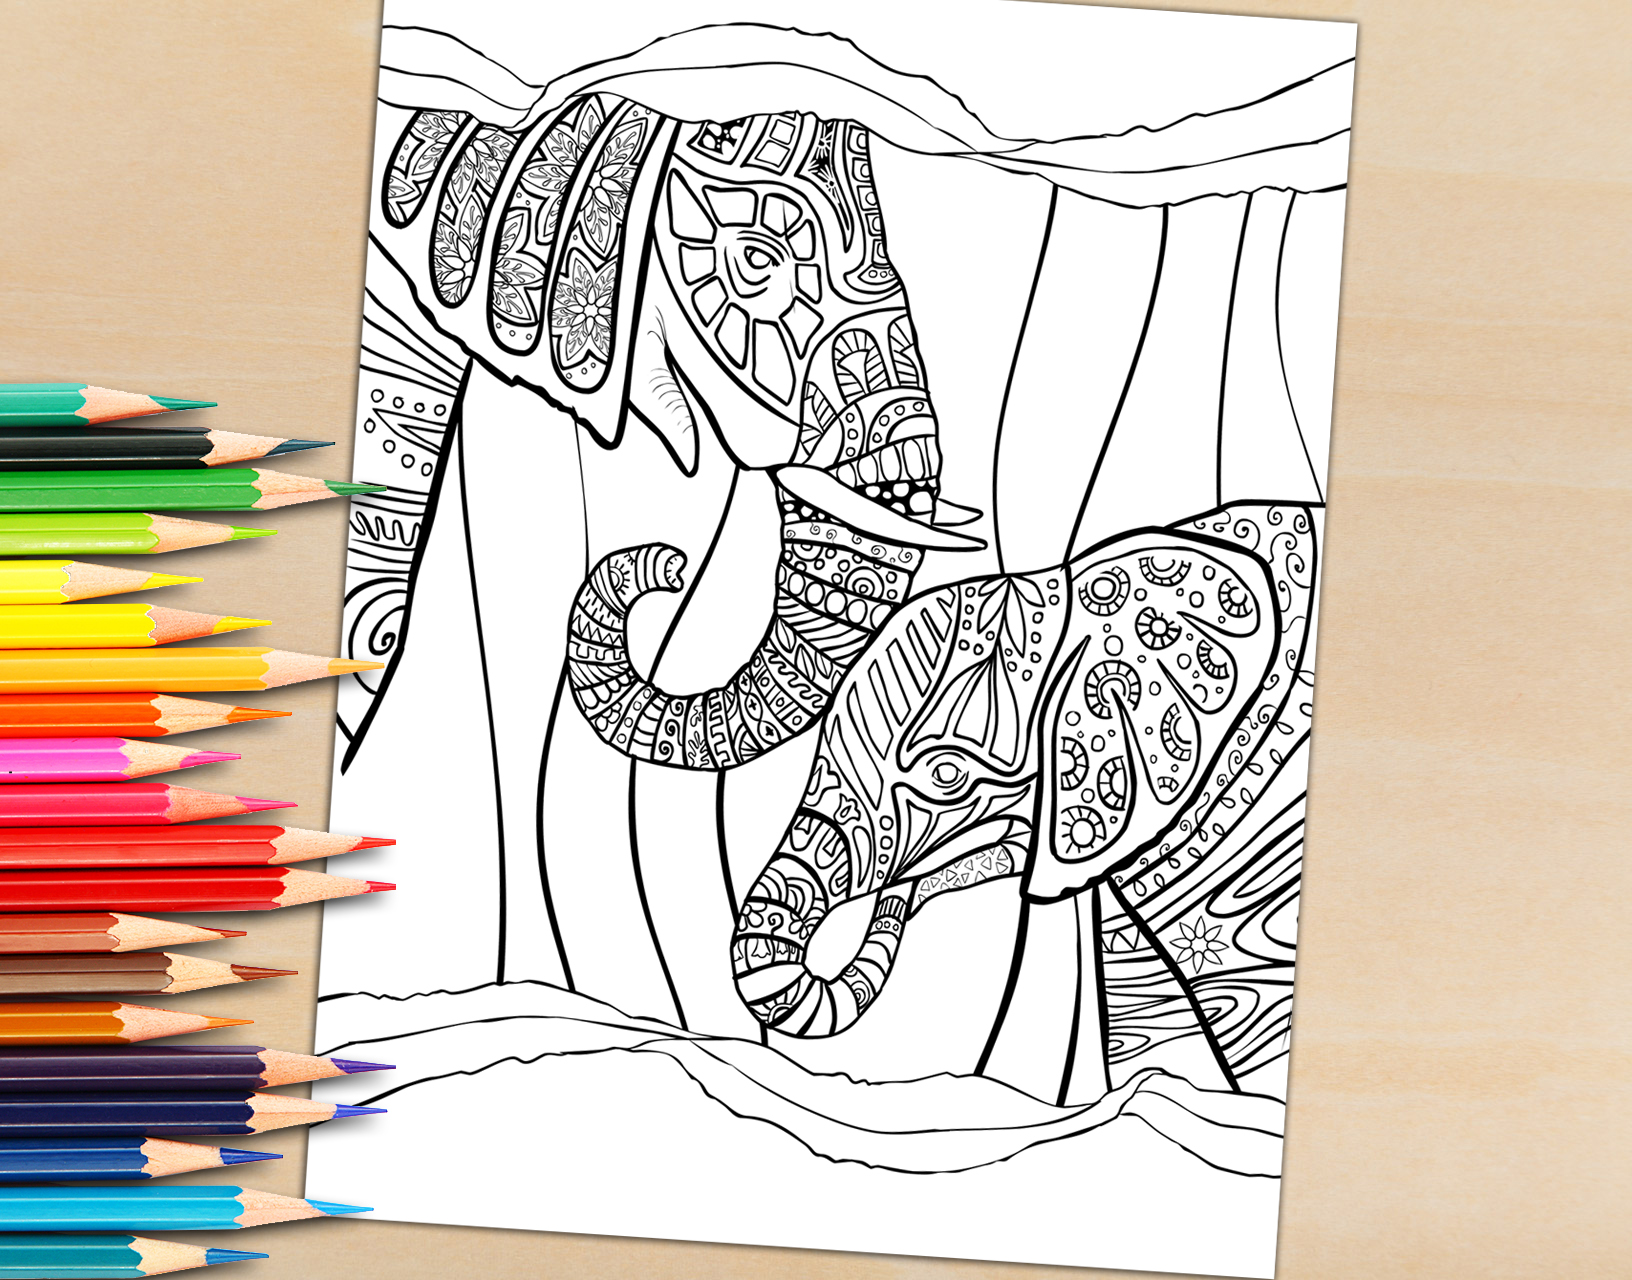 Coloring sheets for adults flamingo - Adult Coloring Book Page Mother And Child Elephant Coloring Page For Adults